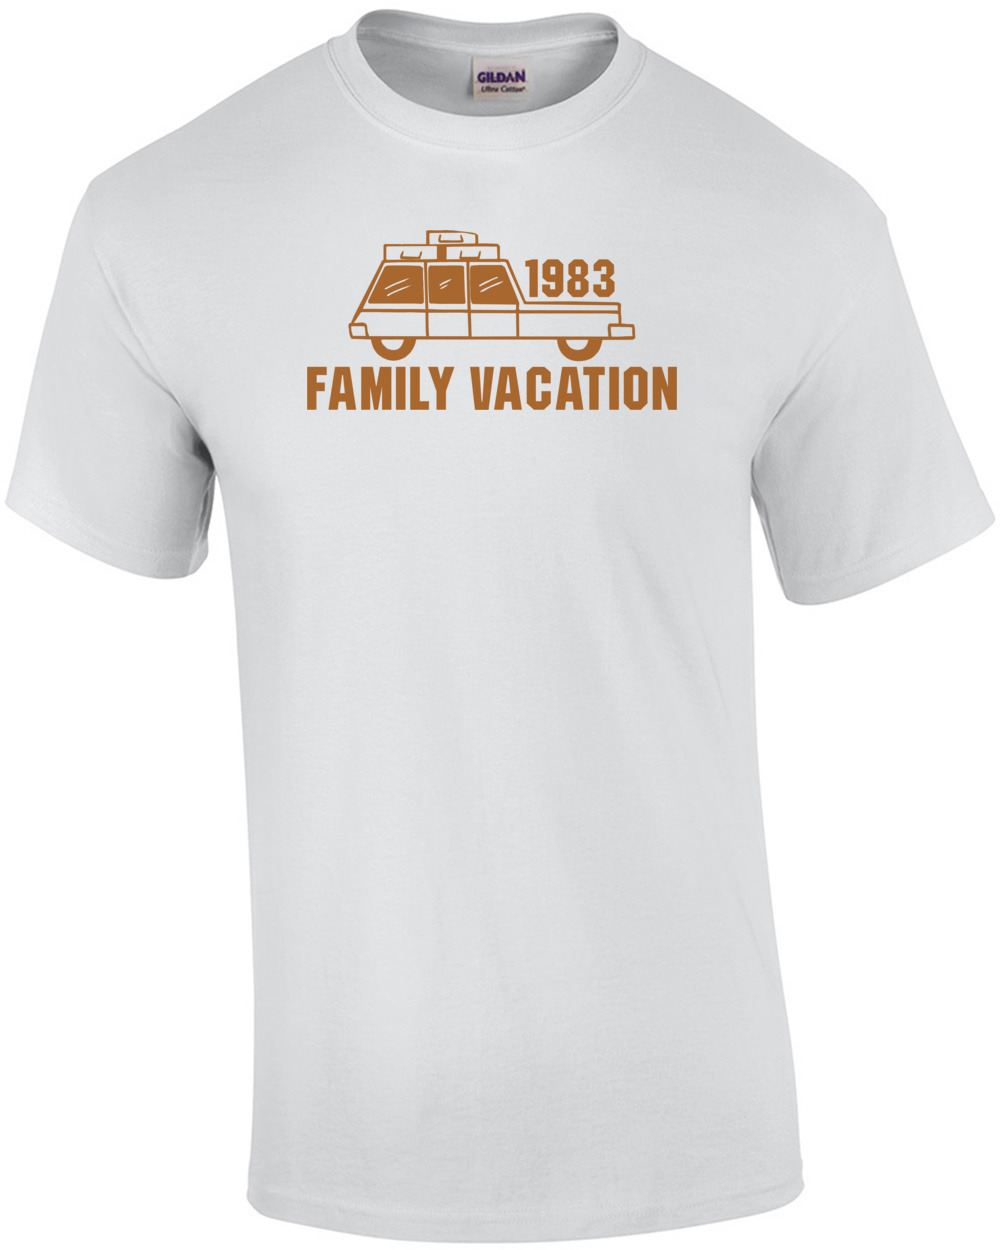 Family vacation tee shirts christmas decore for Custom t shirts family vacation